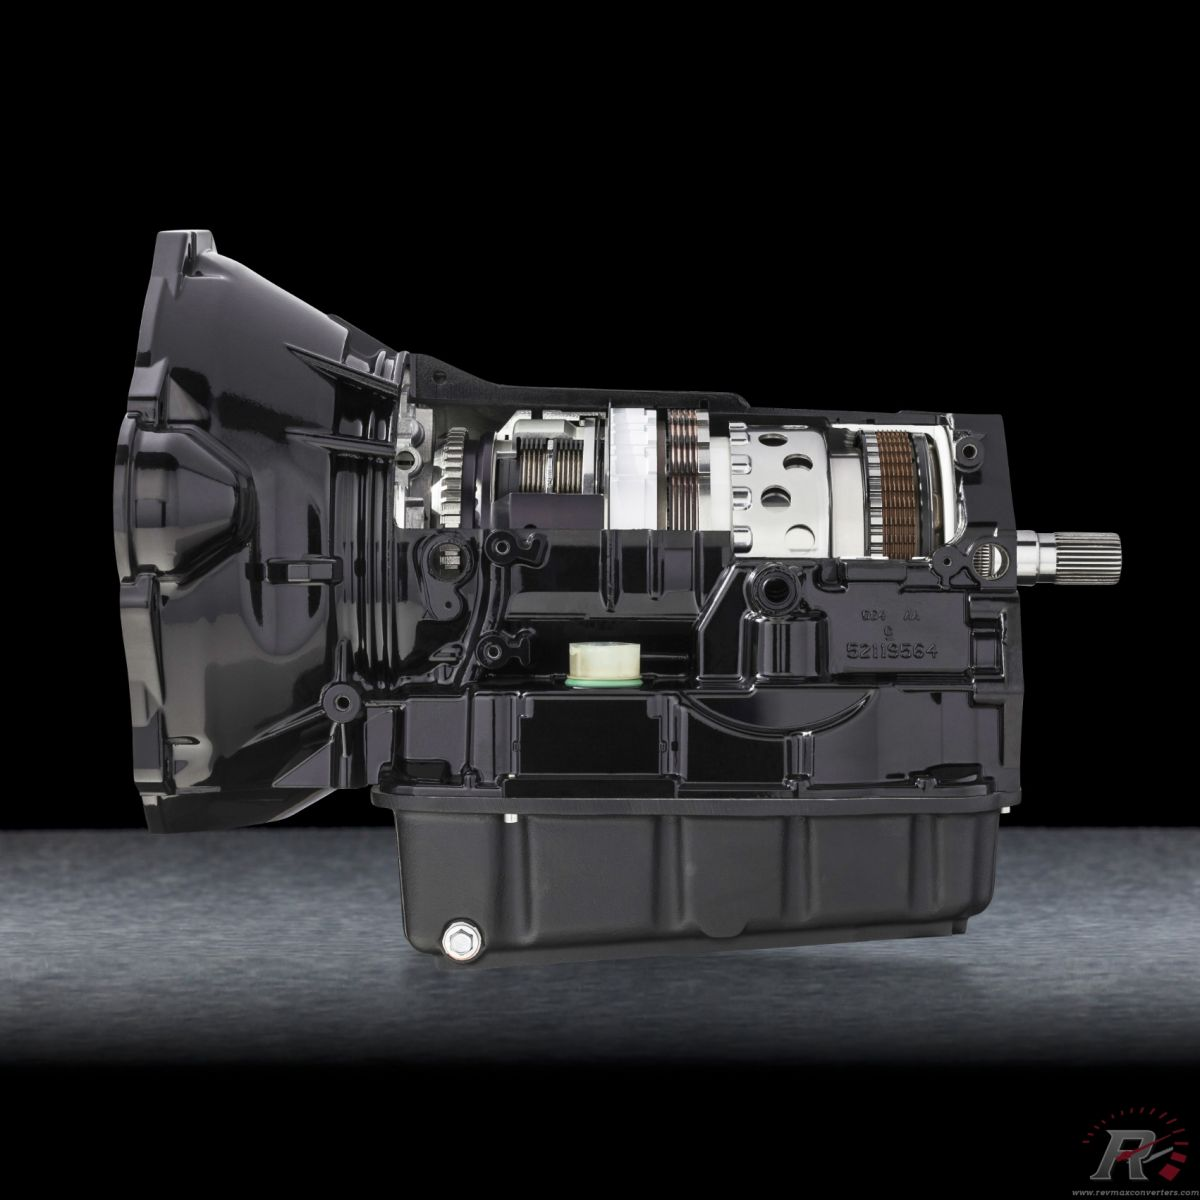 Revmax - Revmax Signature Series 700 68RFE Transmission For 07.5-19 6.7 Cummins